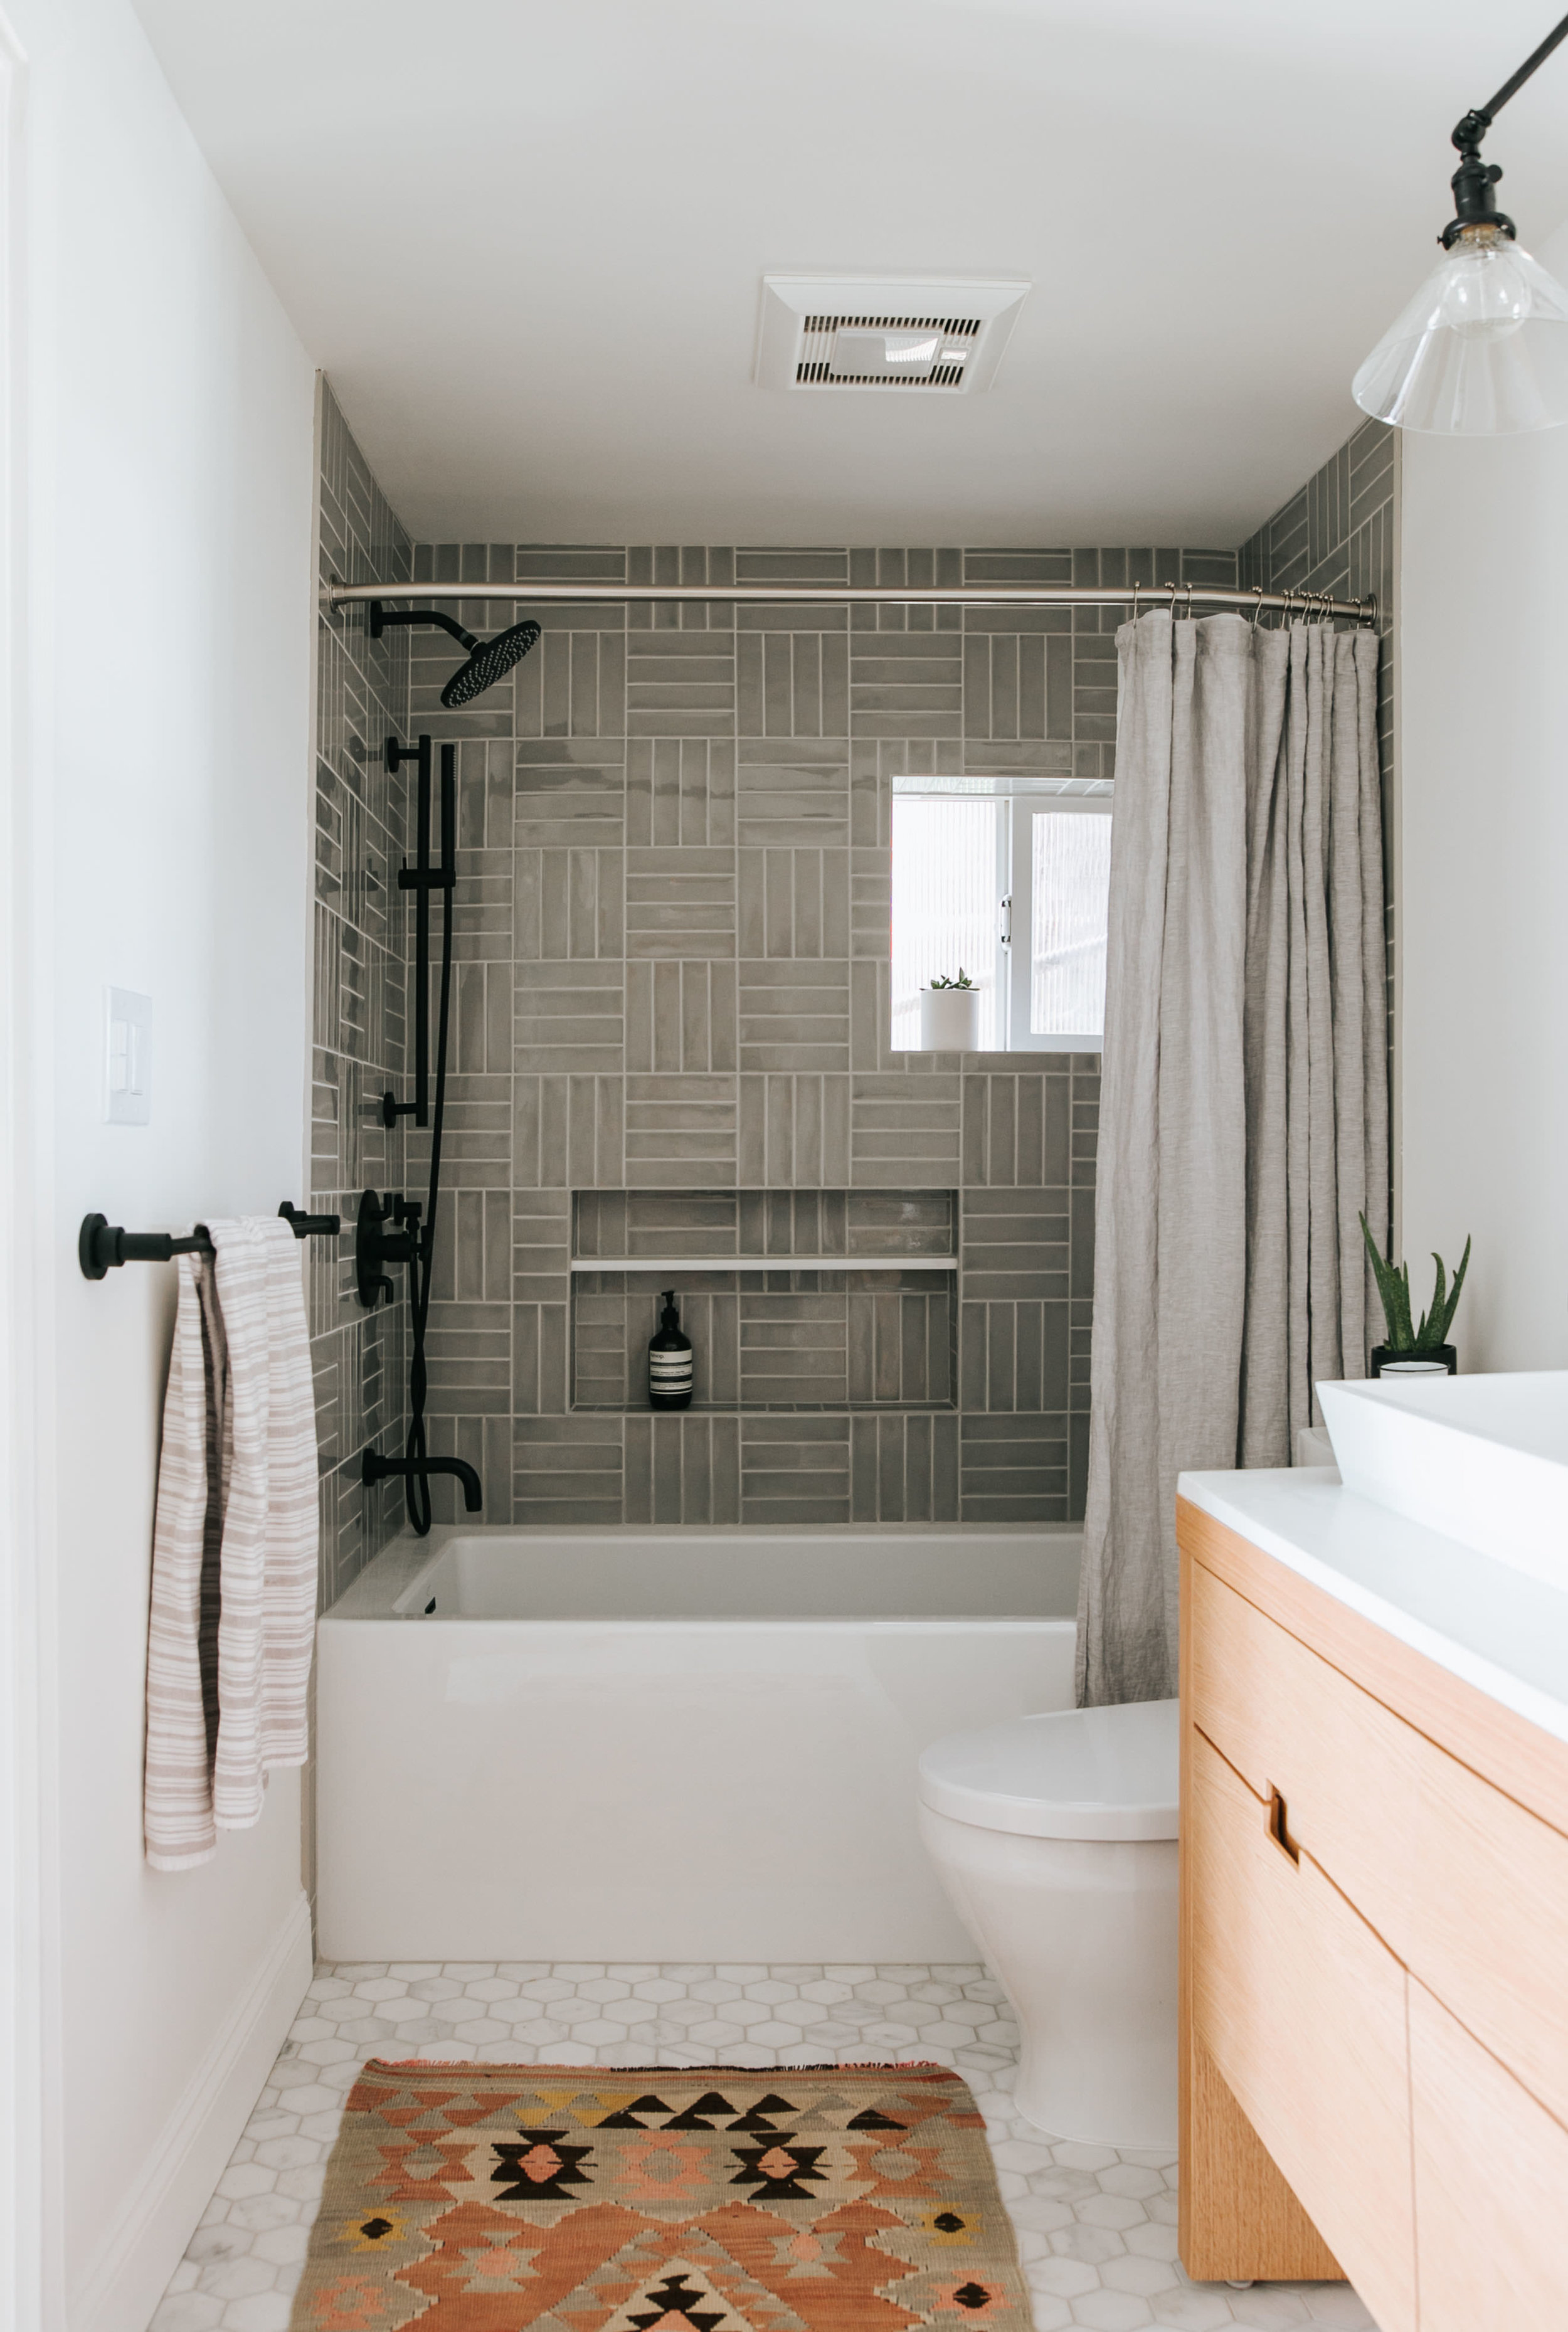 Love the marble shelf we added to the niche for smaller shower goods (and to keep razors out of reach of bathing kids!)